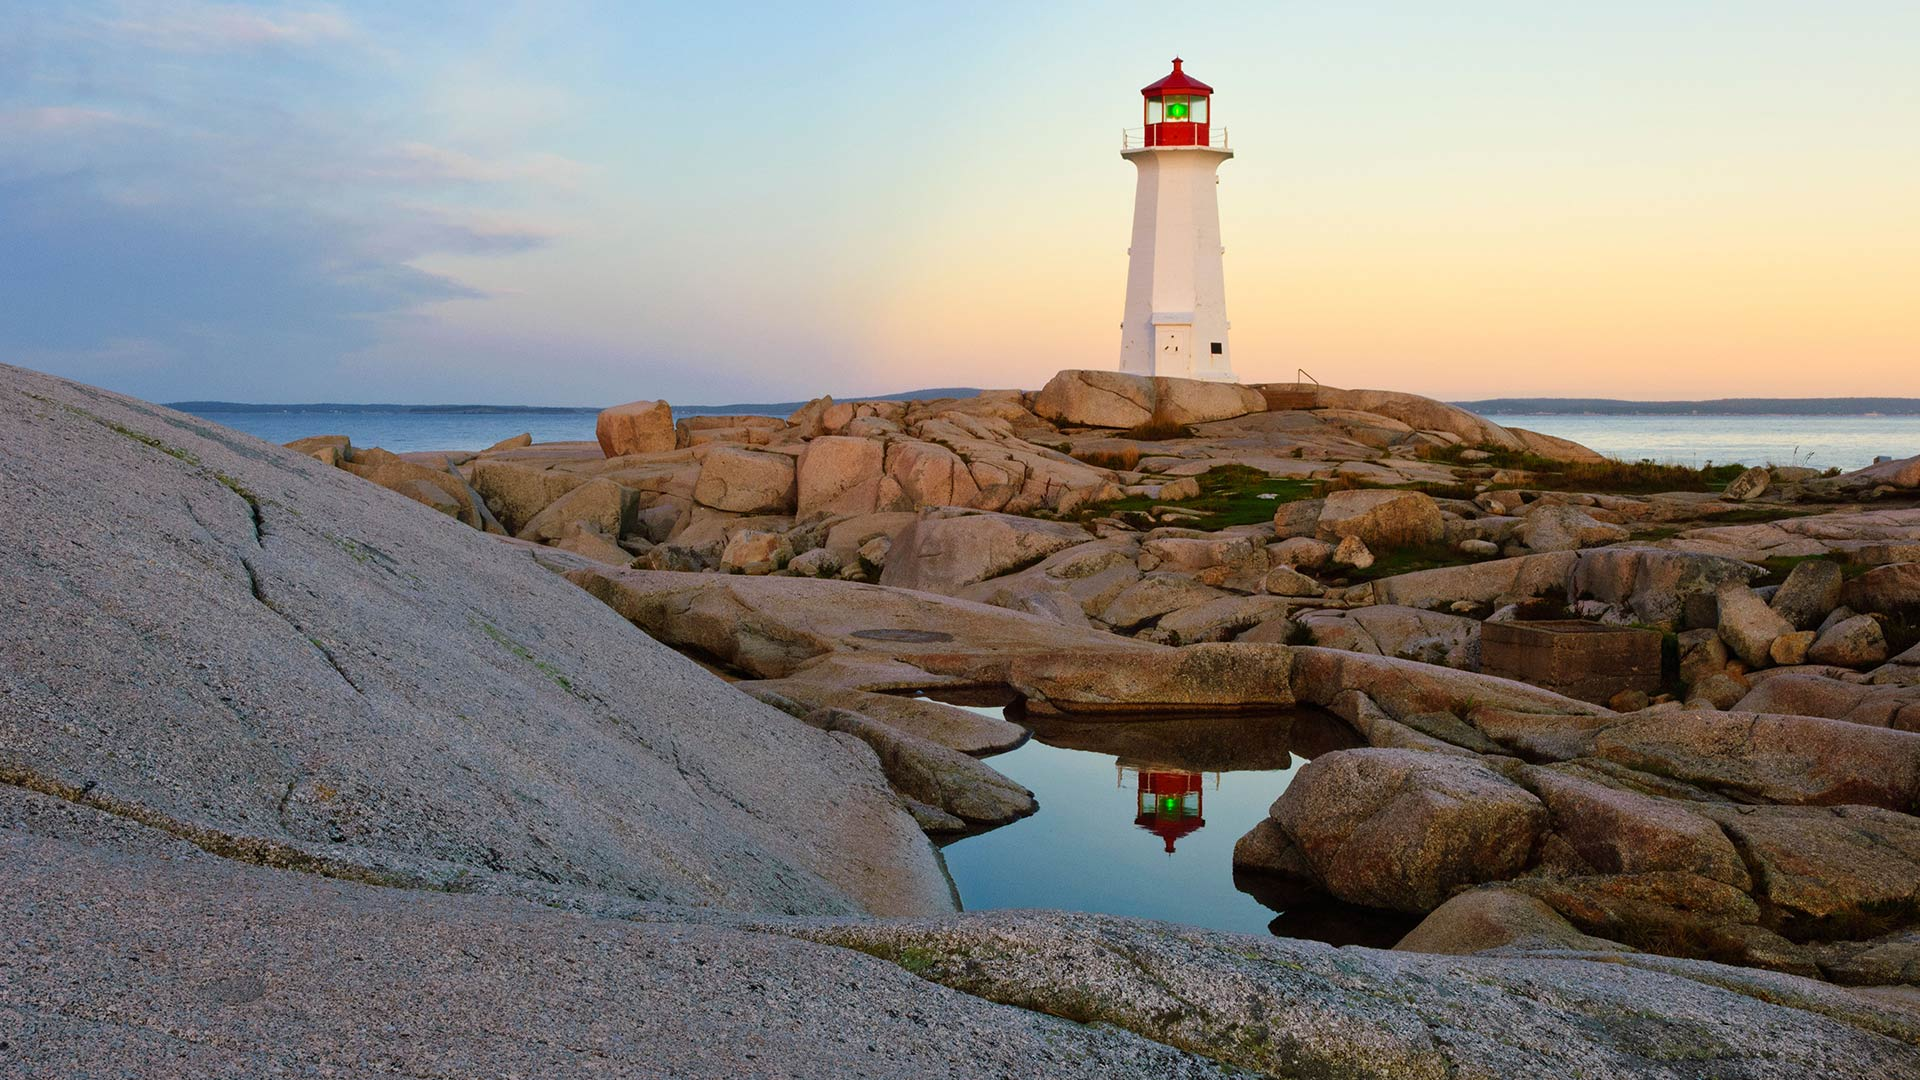 Lighthouse reflected in a pool of water at Peggy's Cove, Nova Scotia, Canada (© Cliff LeSergent/Alamy Stock Photo)